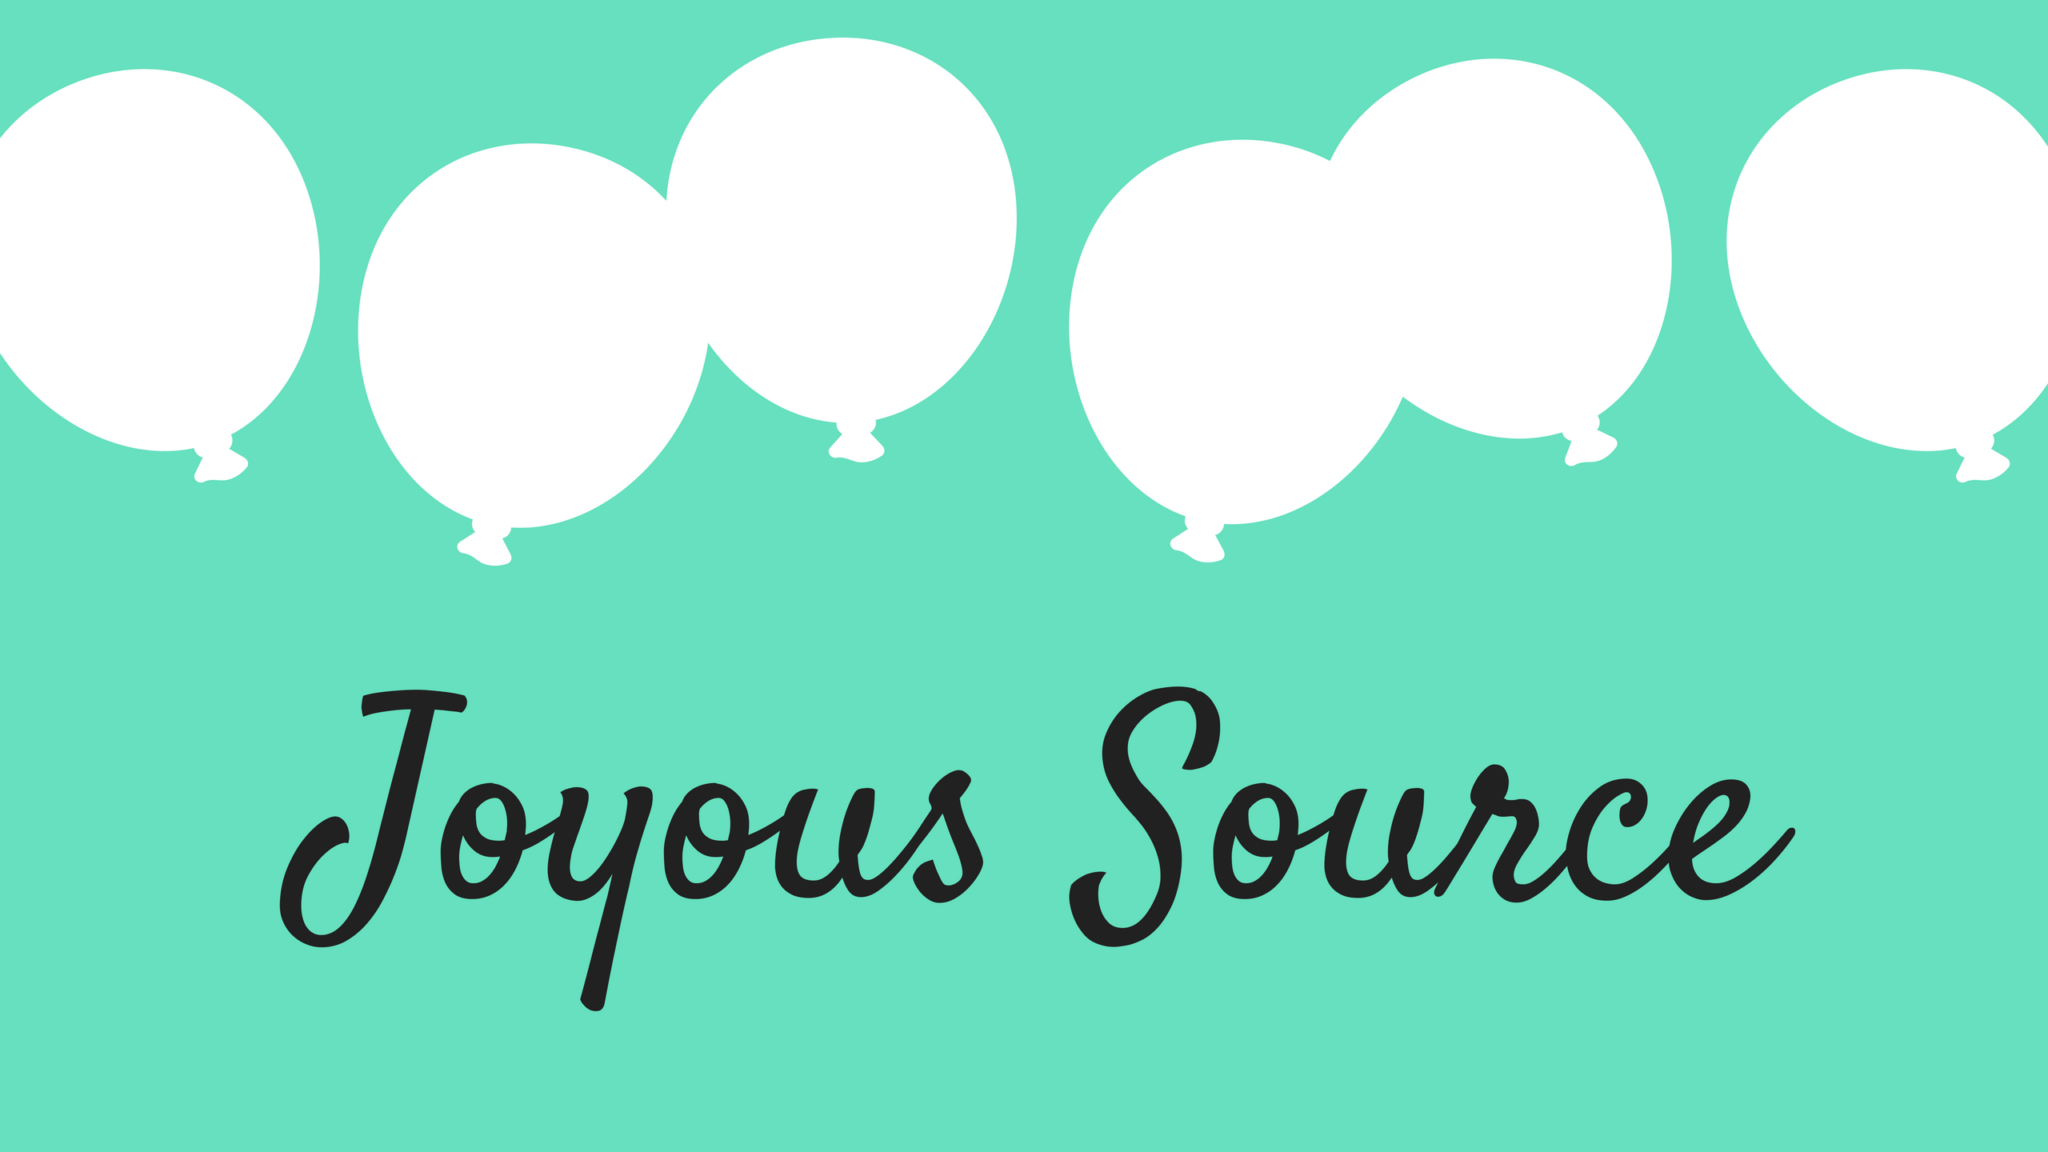 Listed on JoyousSource